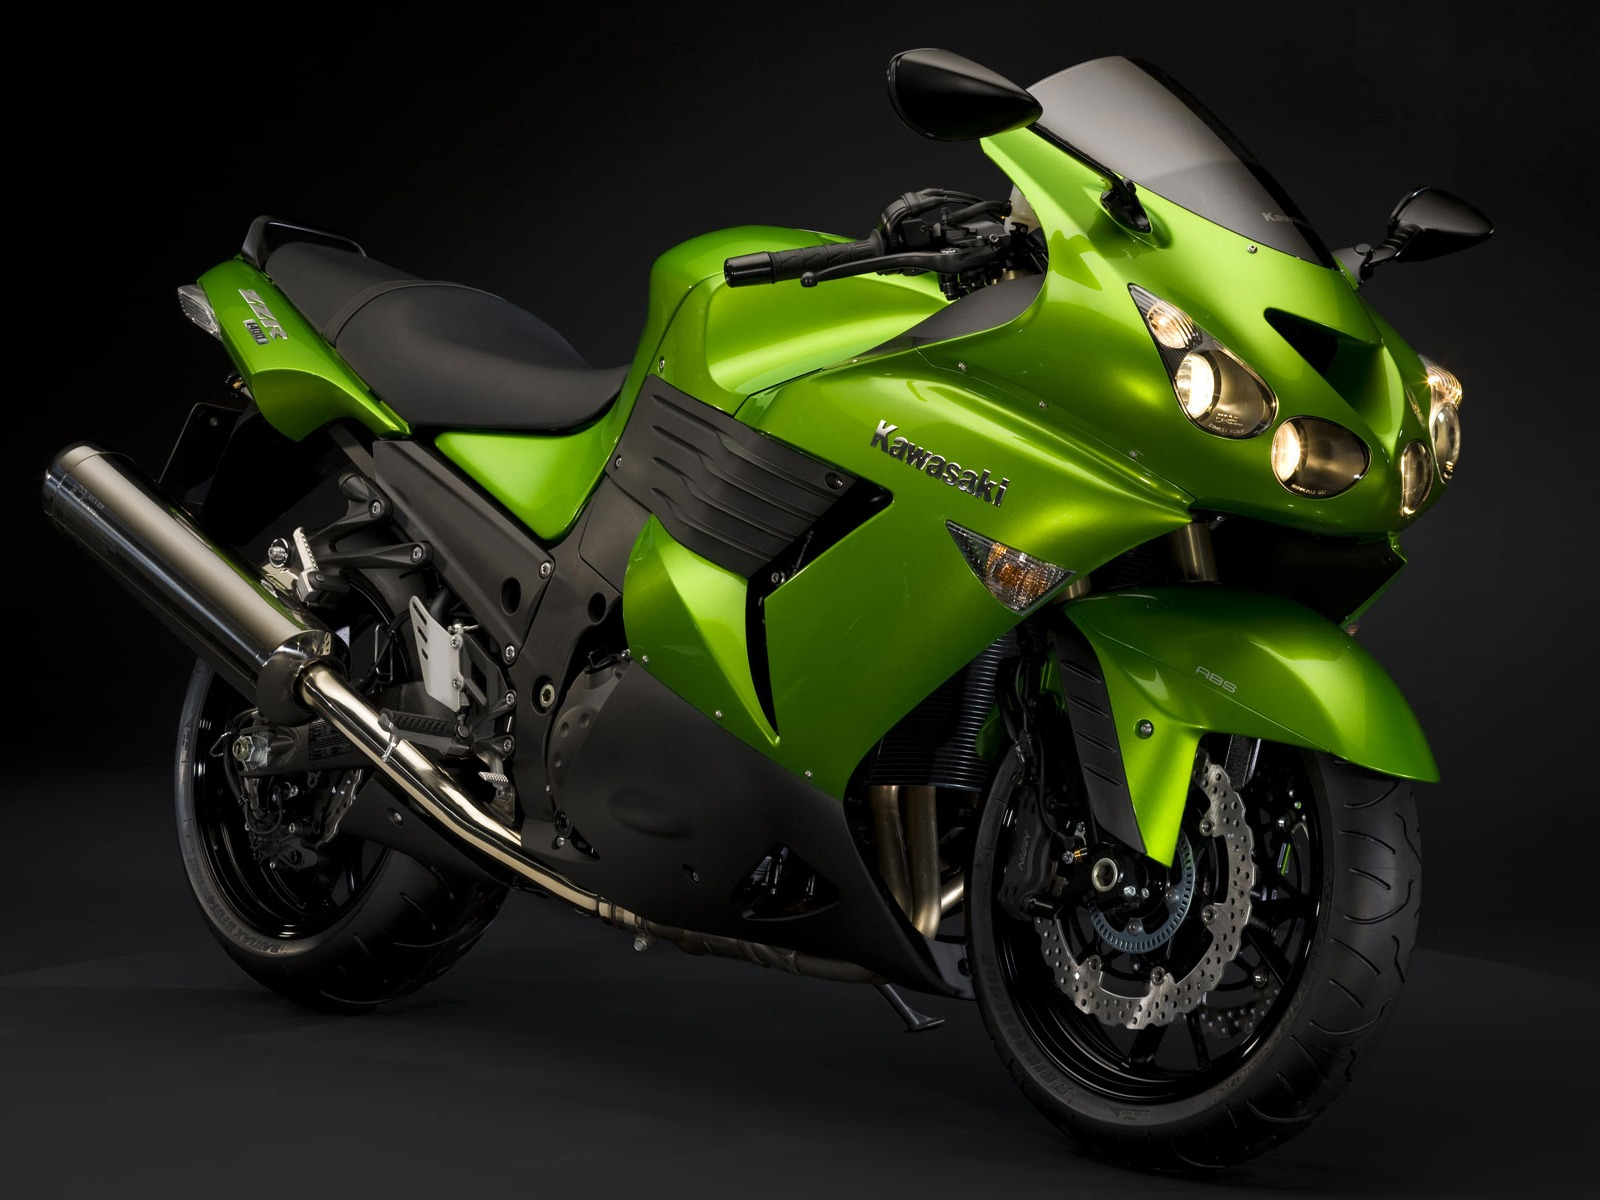 1600x1200 Kawasaki zzr 1400 desktop PC and Mac wallpaper 1600x1200